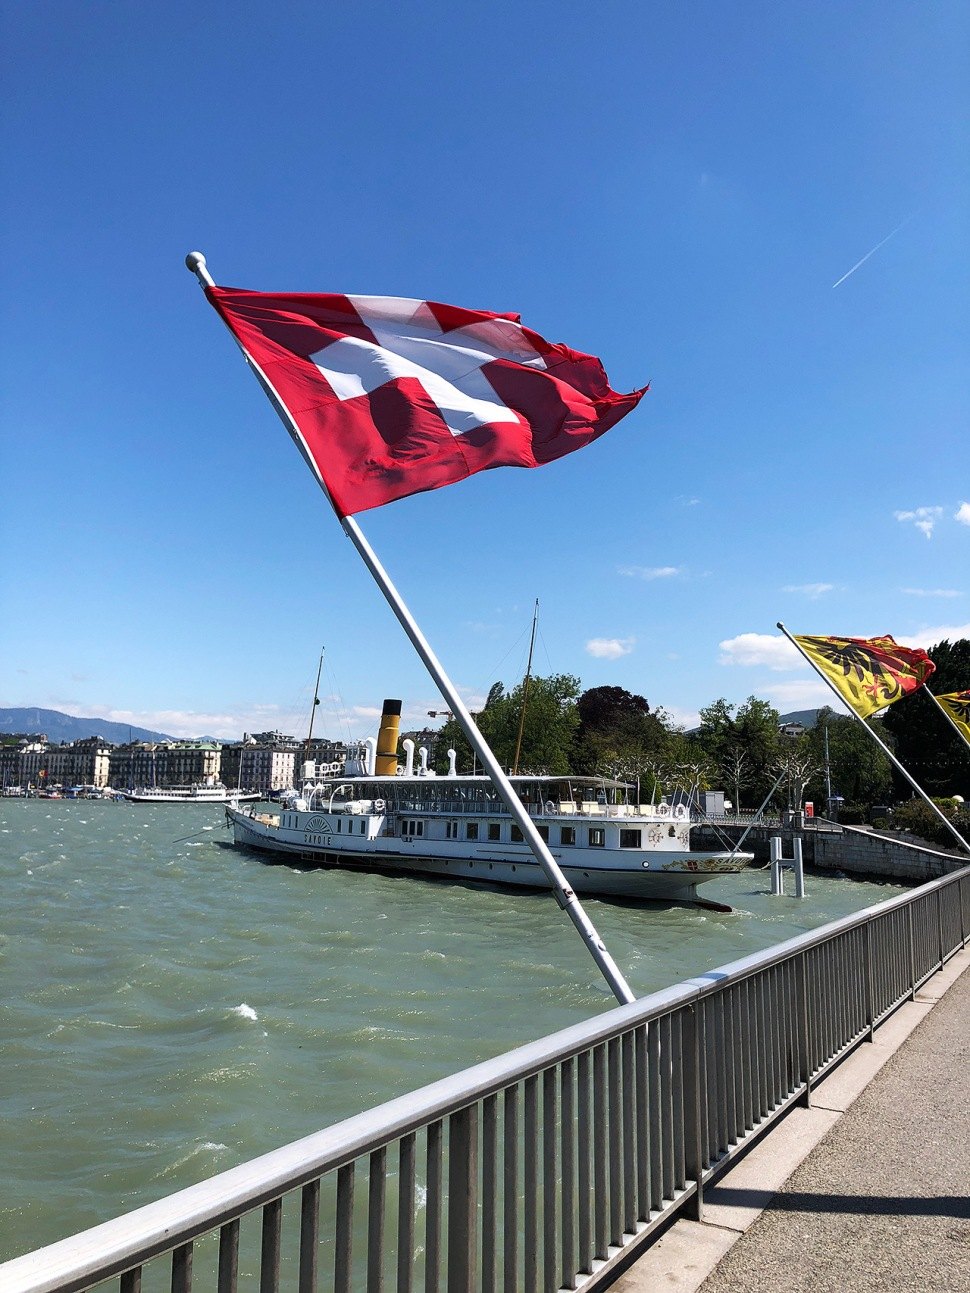 190517-geneva-windy-weather.jpg